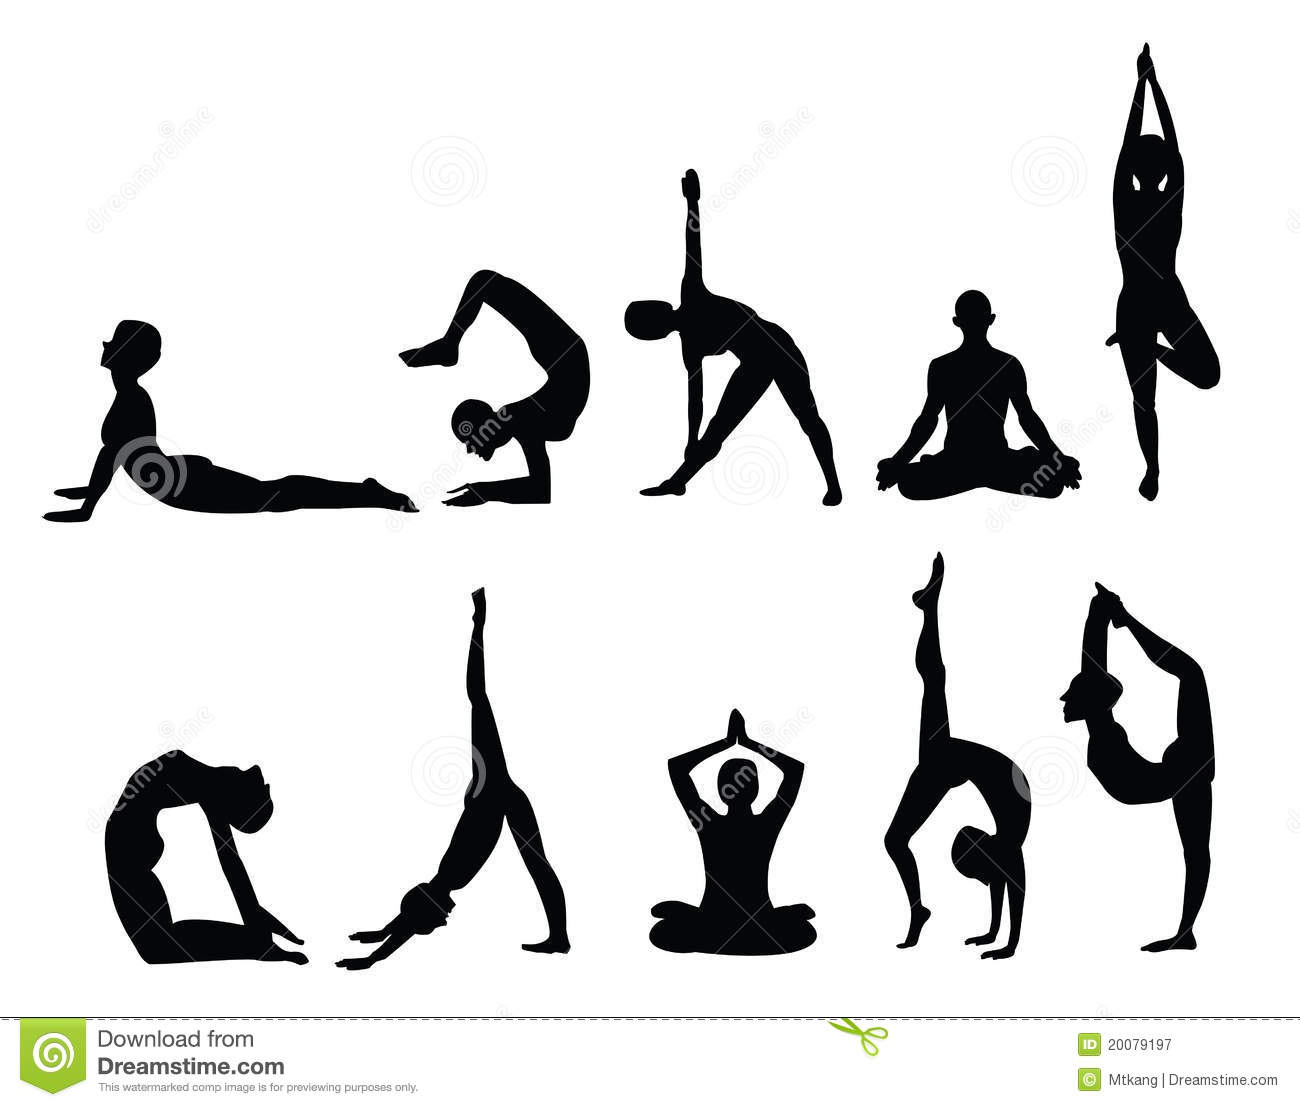 picture relating to Bikram Yoga Poses Chart Printable referred to as Yoga silhouettes inventory vector. Case in point of products